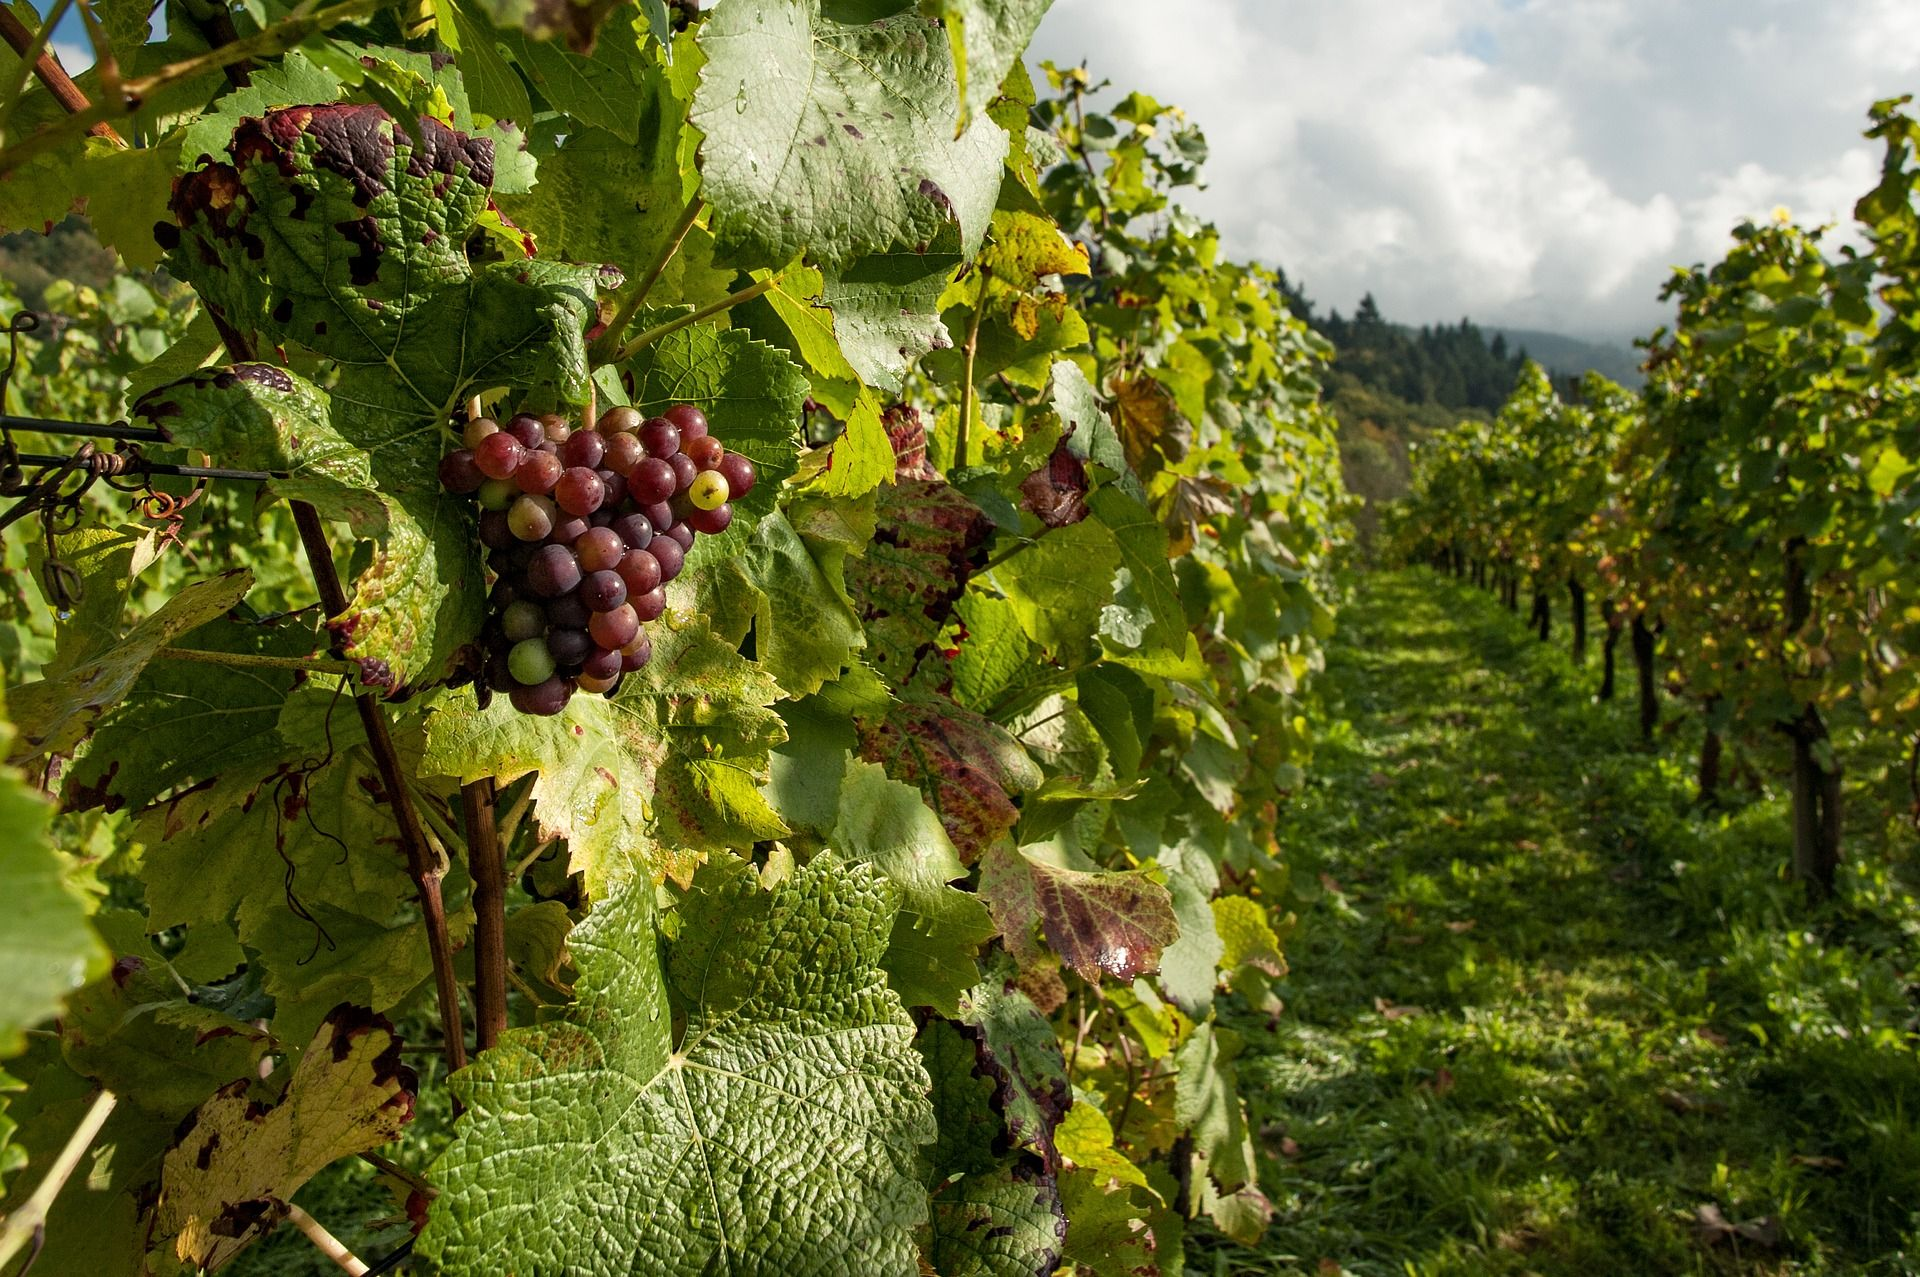 Vineyard with red grapes